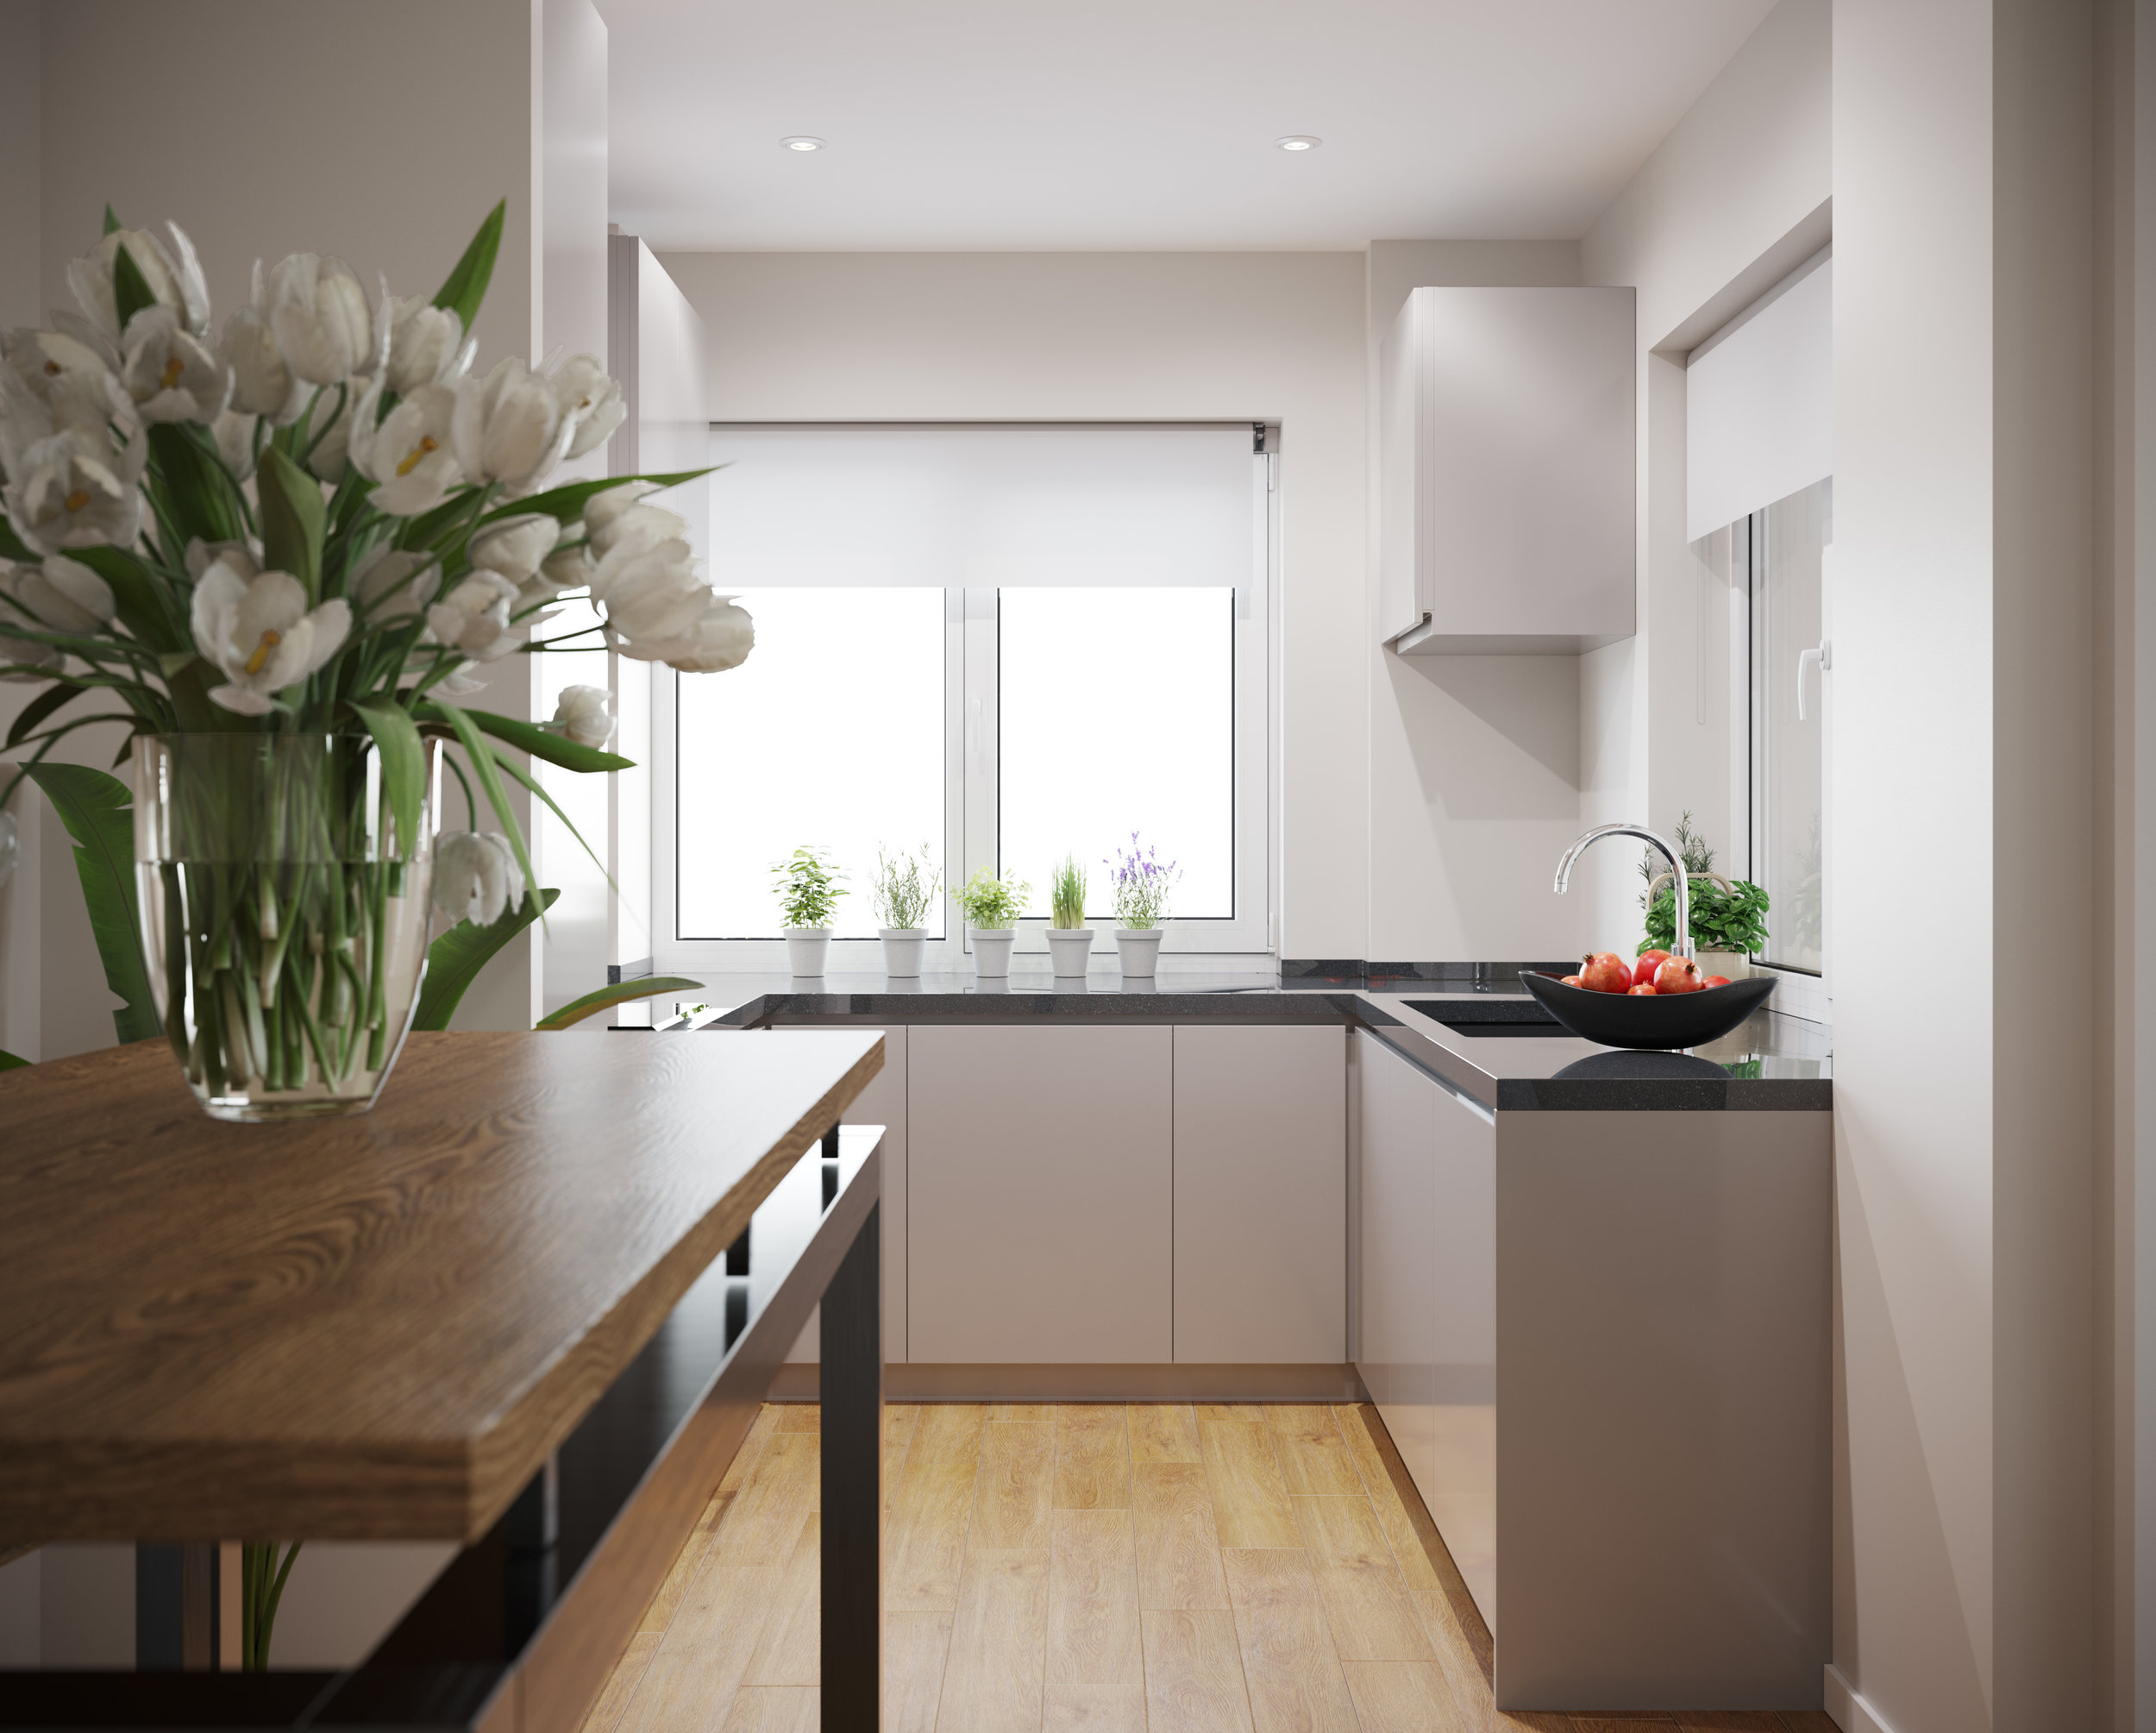 Apartment - Kitchen and Diner CGI - London.jpg